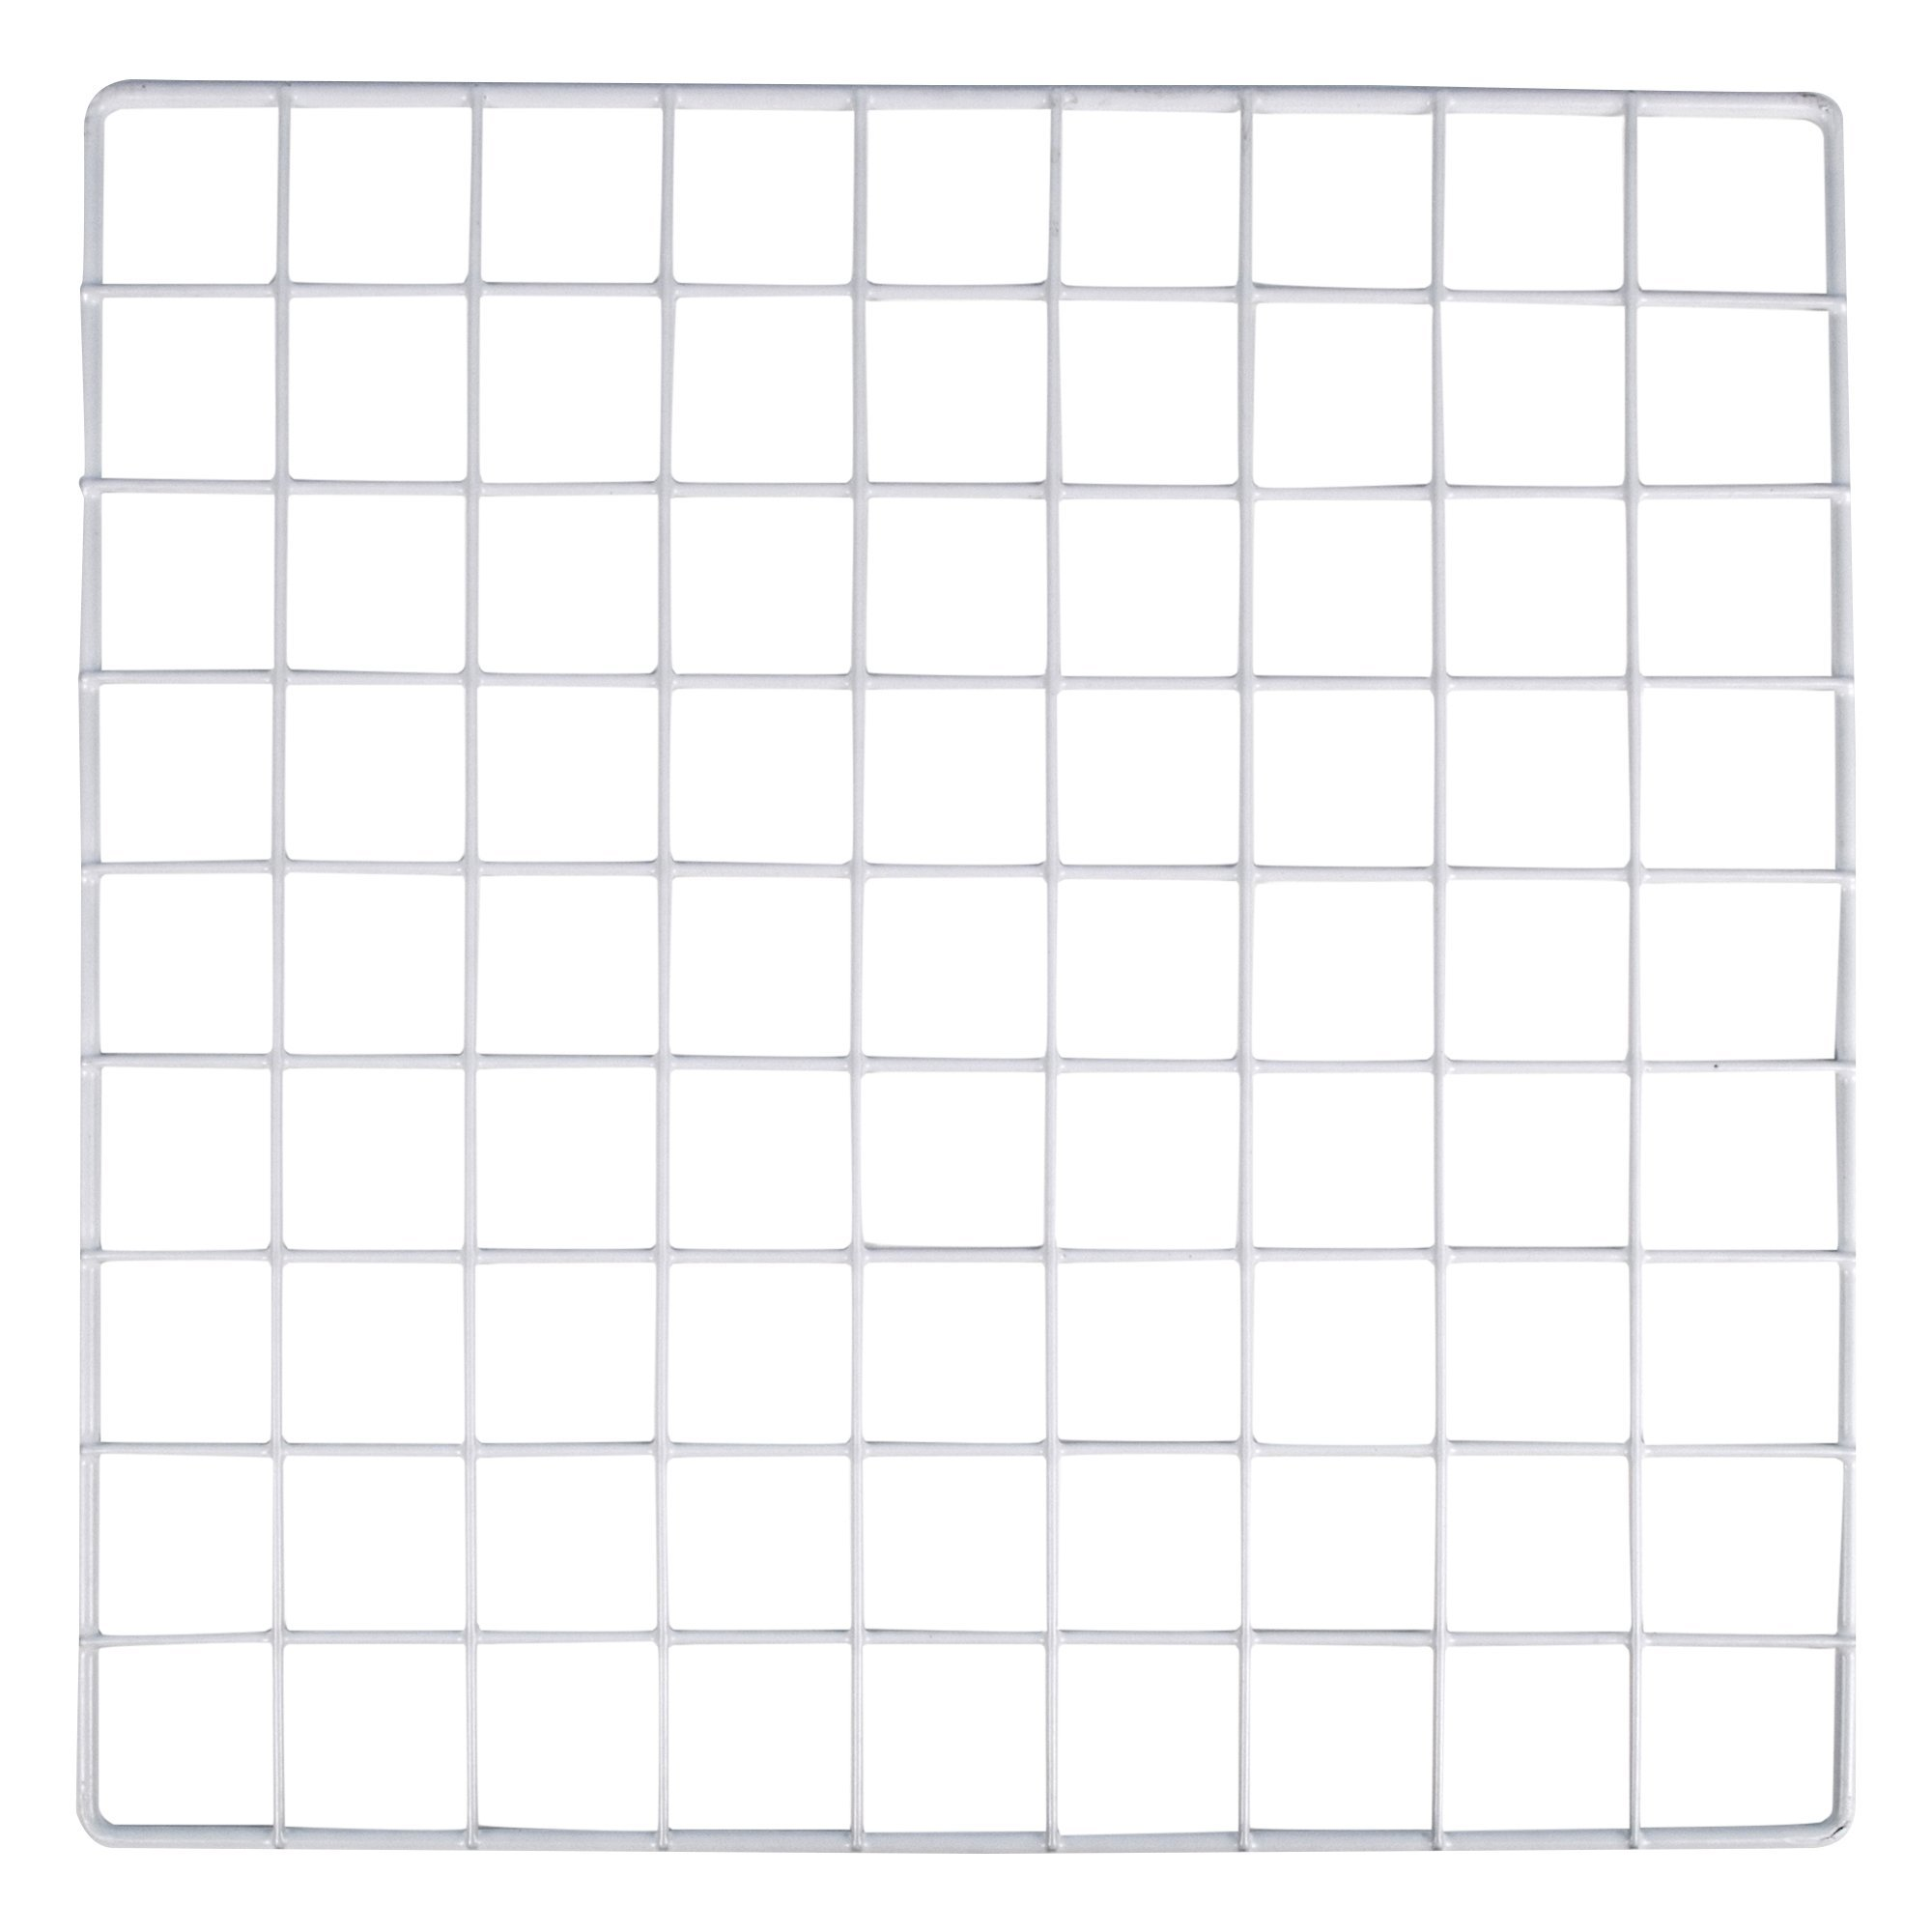 KC Store Fixtures A04110 Mini Grid, 14'' x 14'', White (Pack of 48)